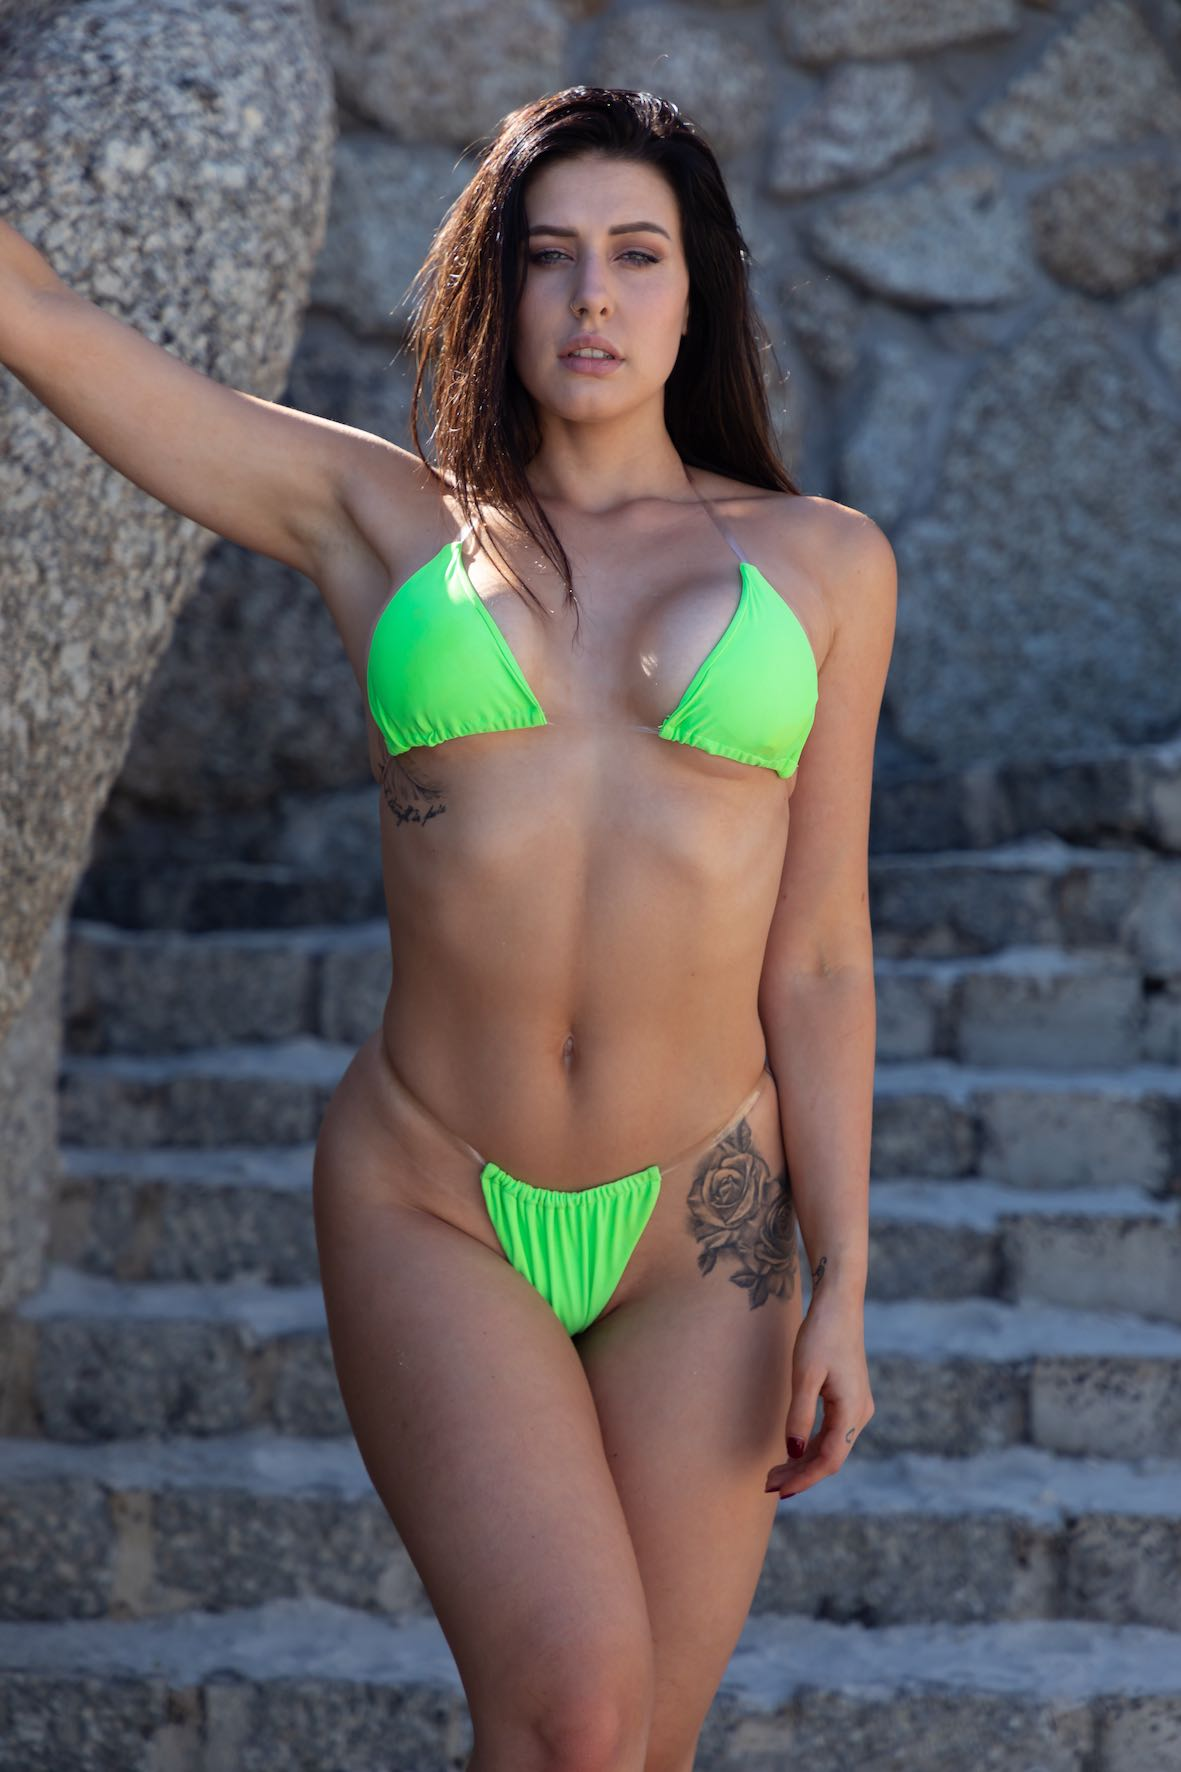 Meet Alice Orion in our SA Babes feature